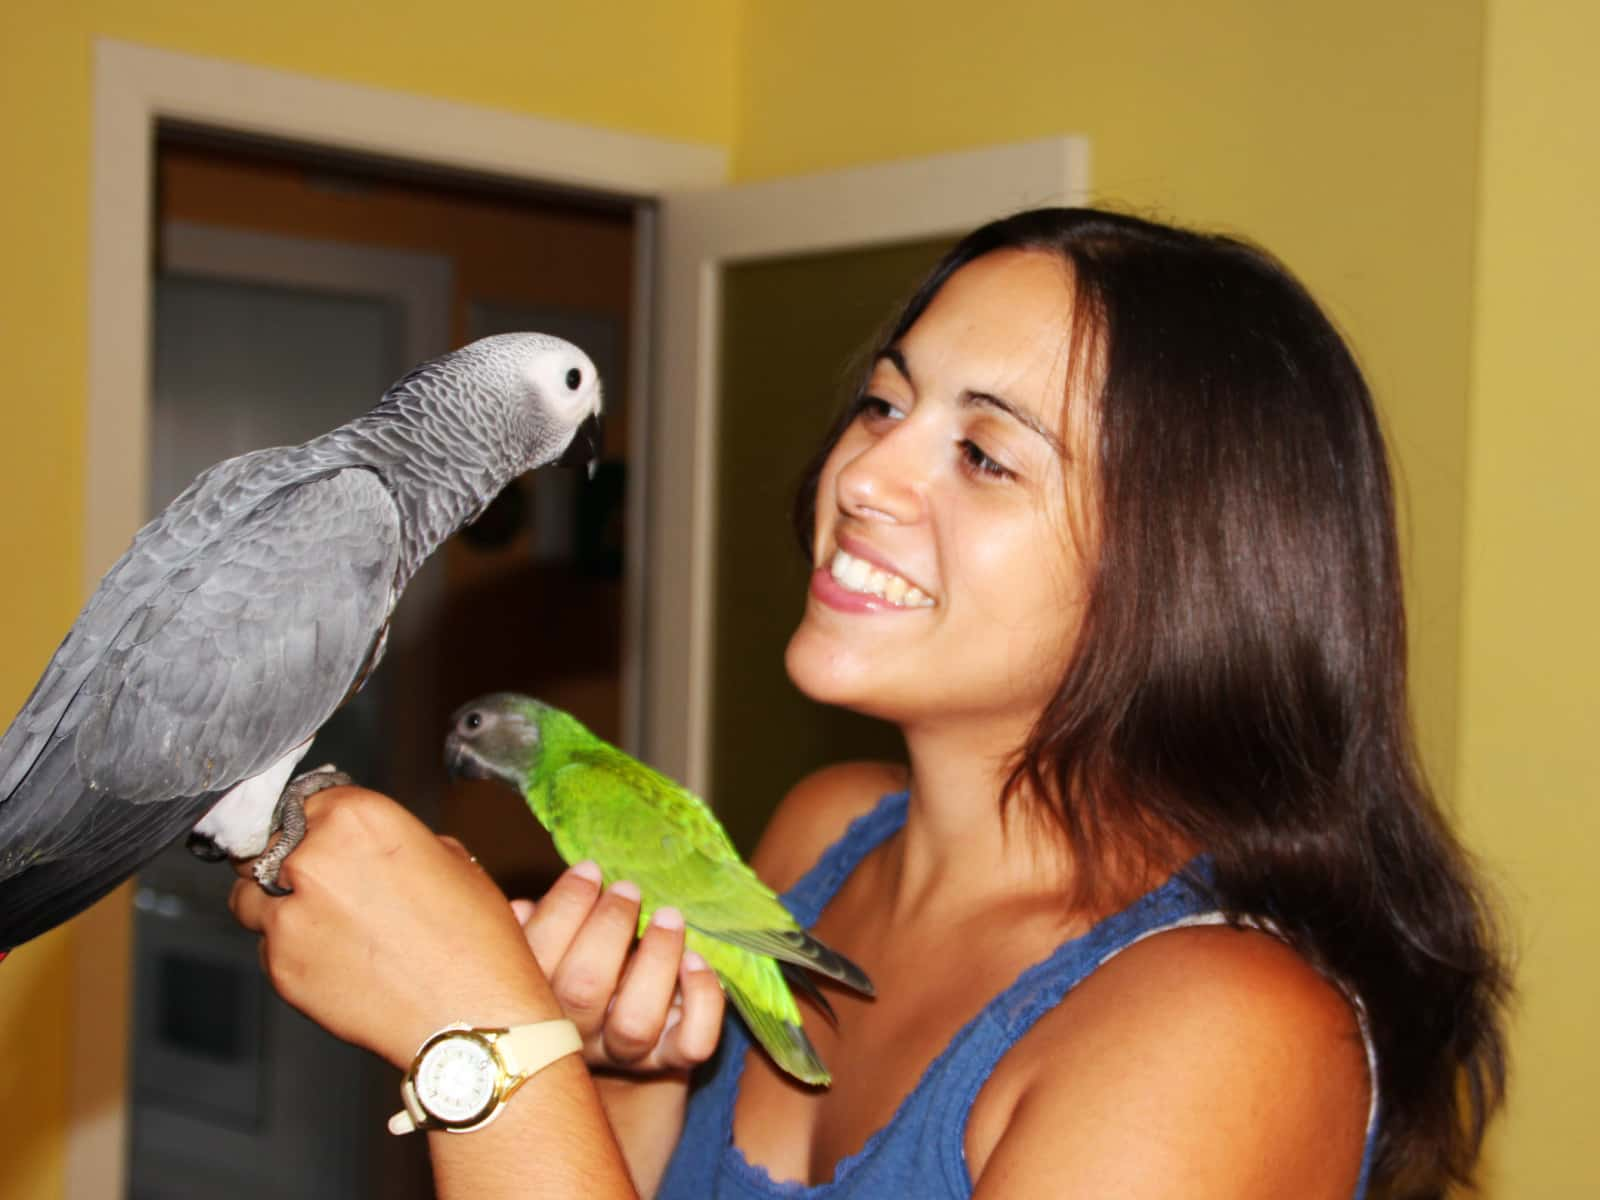 Puri and parrots